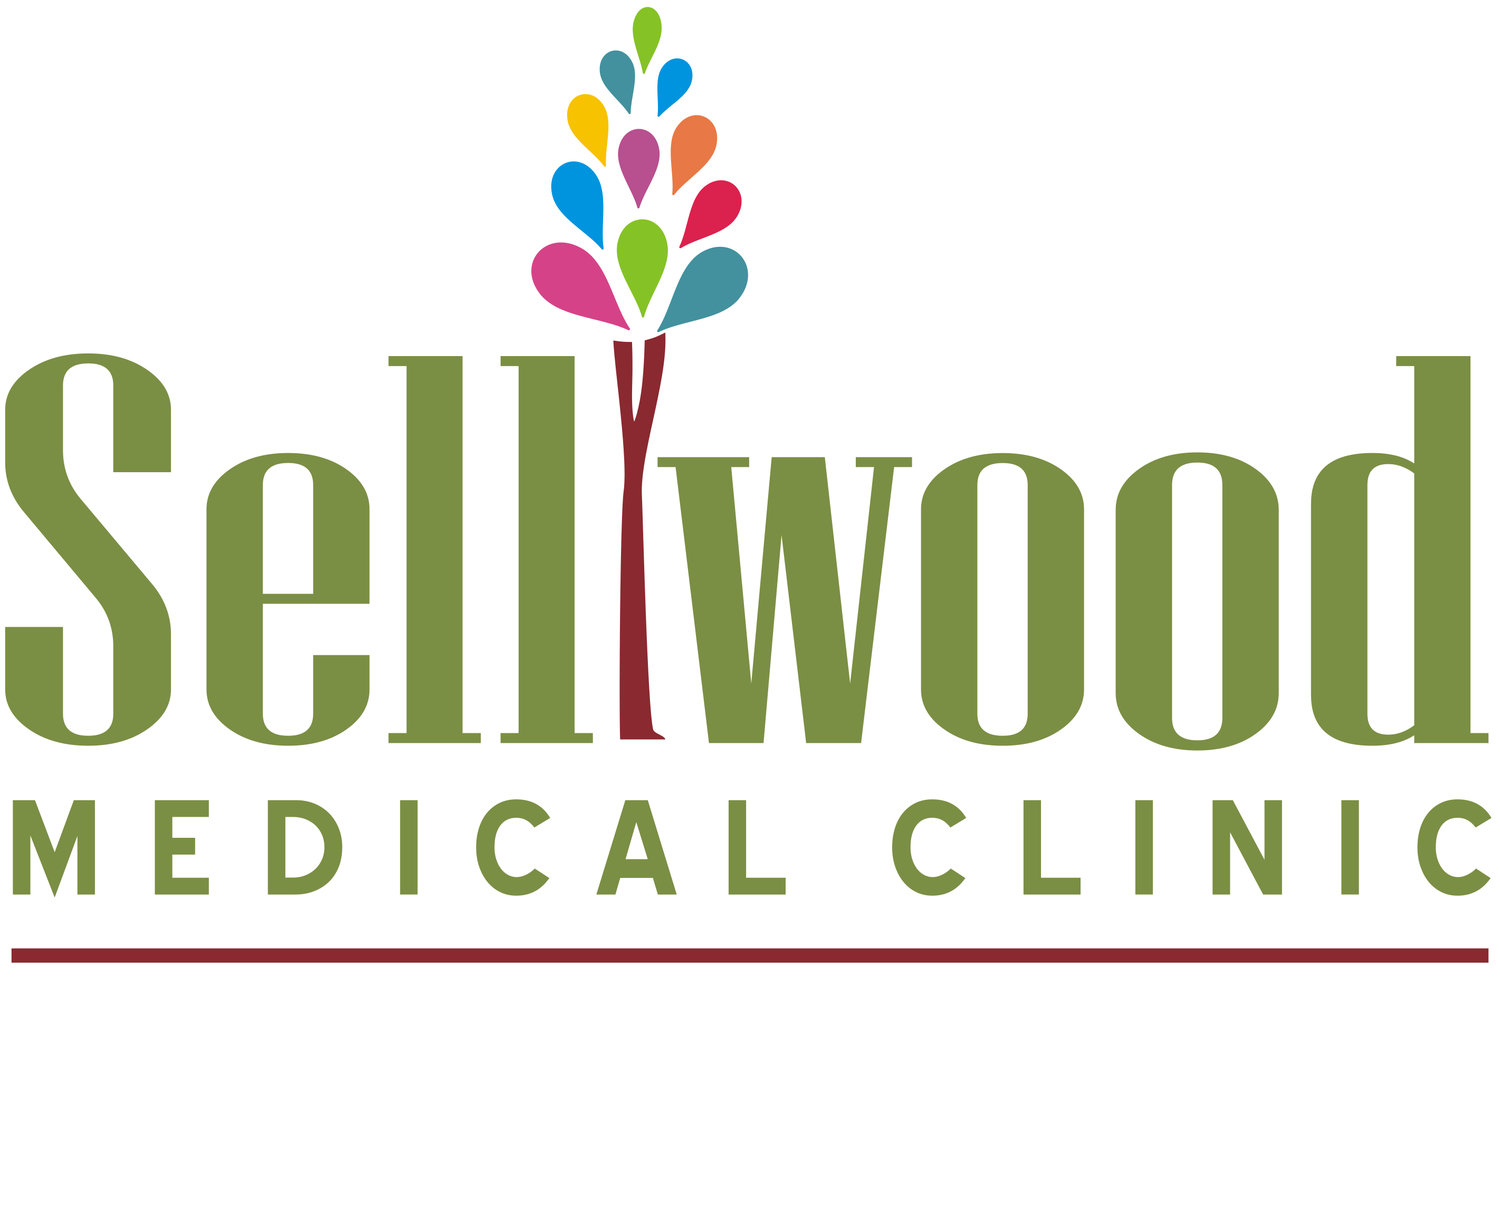 Sellwood Medical Clinic